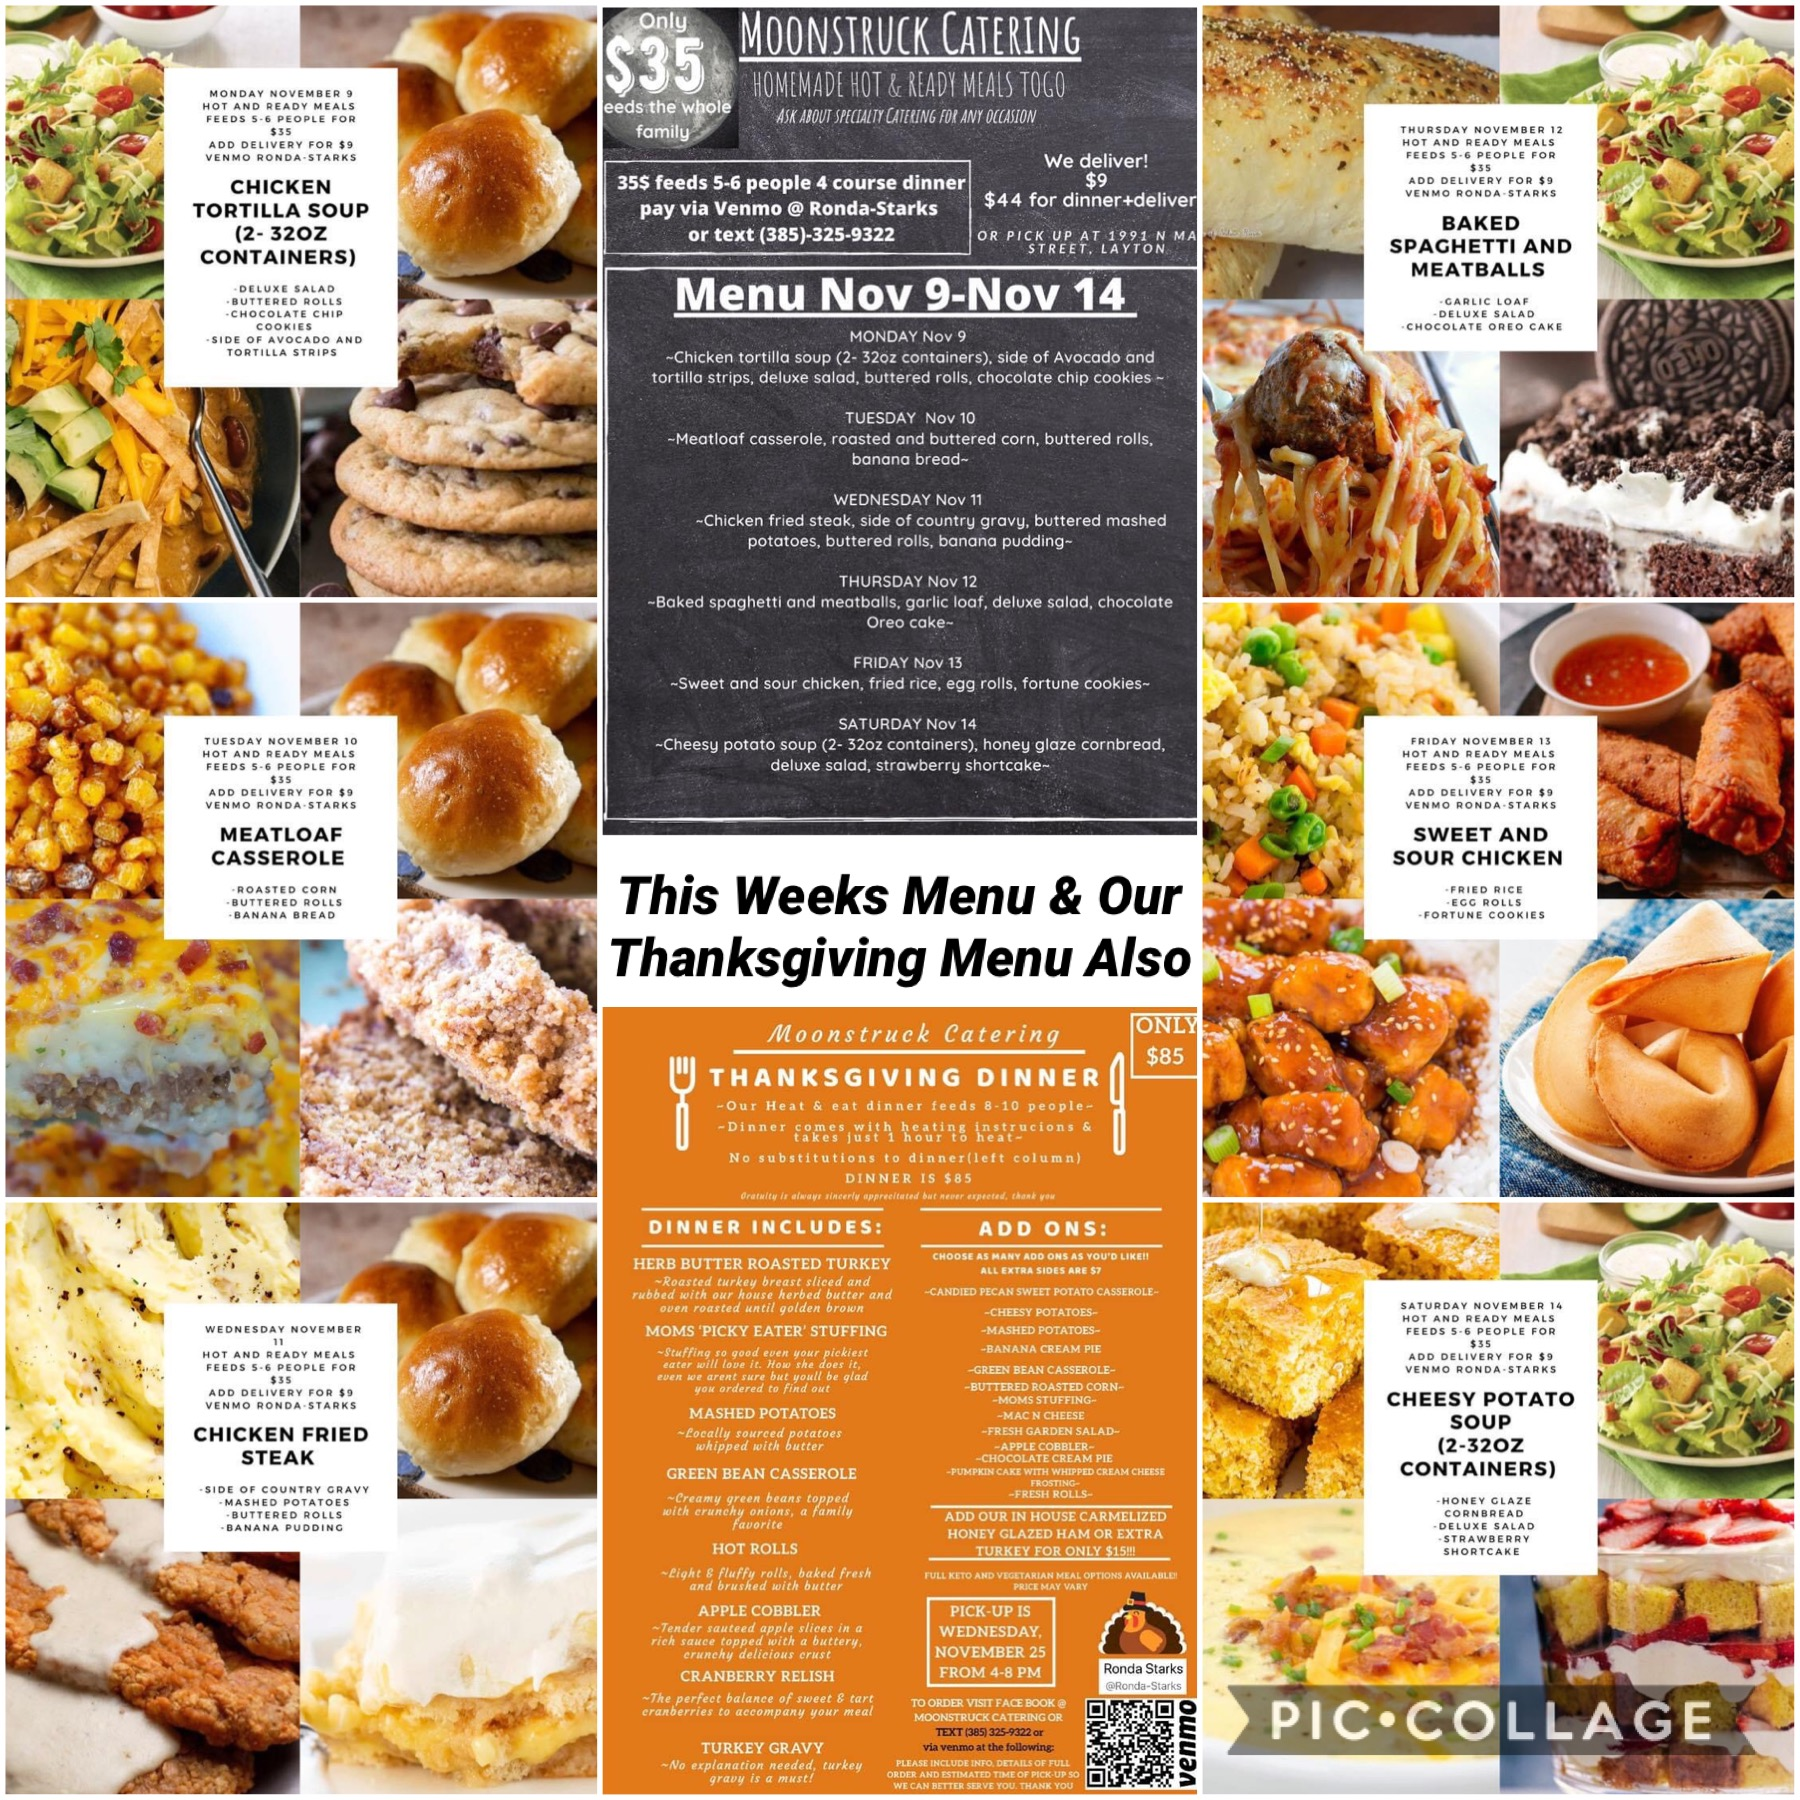 Nov 9-Nov 14 Next weeks menu! Order anytime via Venmo Ronda-Starks just make sure you say what day you want. Feeds 5-6 people for only $35 Add delivery for $9 (must be added no later than by 2 PM the day of)